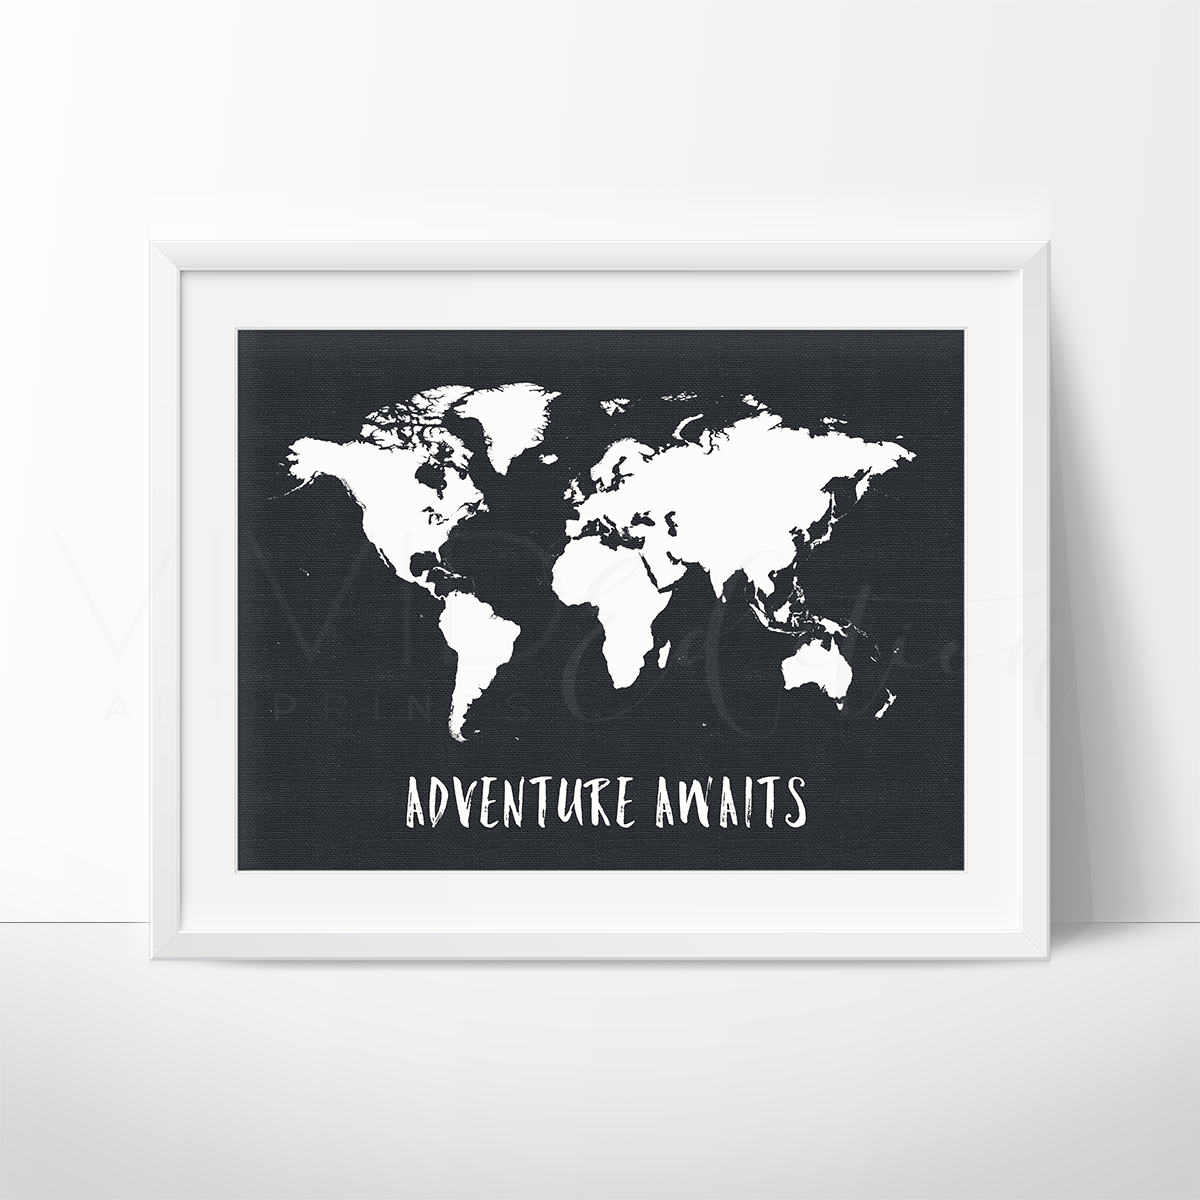 Adventure awaits world map black white adventure awaits world map black white art print vivideditions gumiabroncs Choice Image